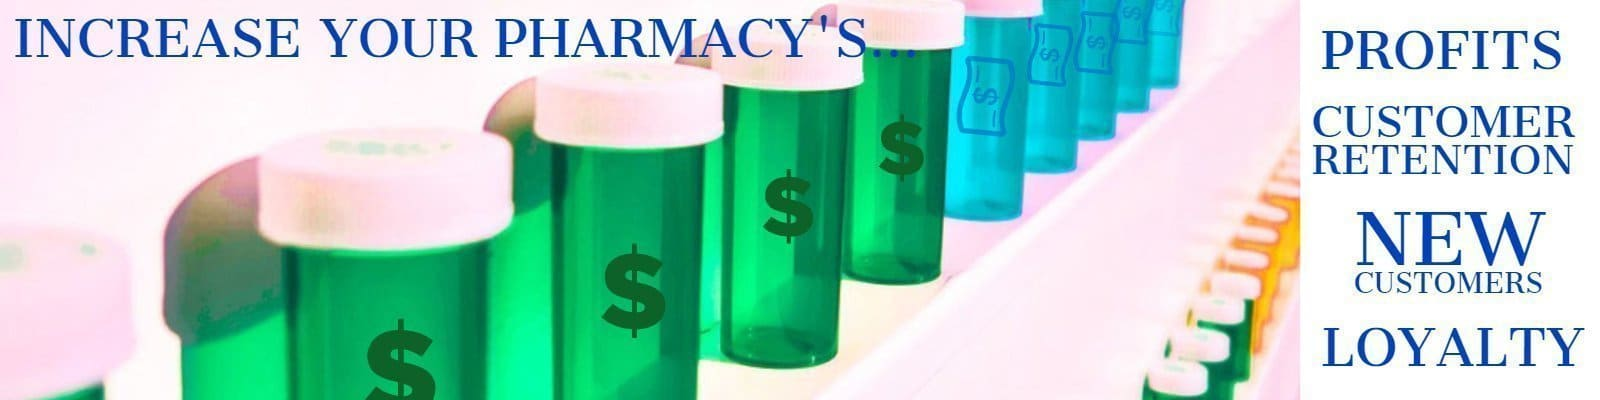 pharmacy profitability, profit generating products, pharmacy revenues, pharmacy revenue streams, Drug Testing kits to sell, colon screening kits to sell, improve my pharmacy profitability